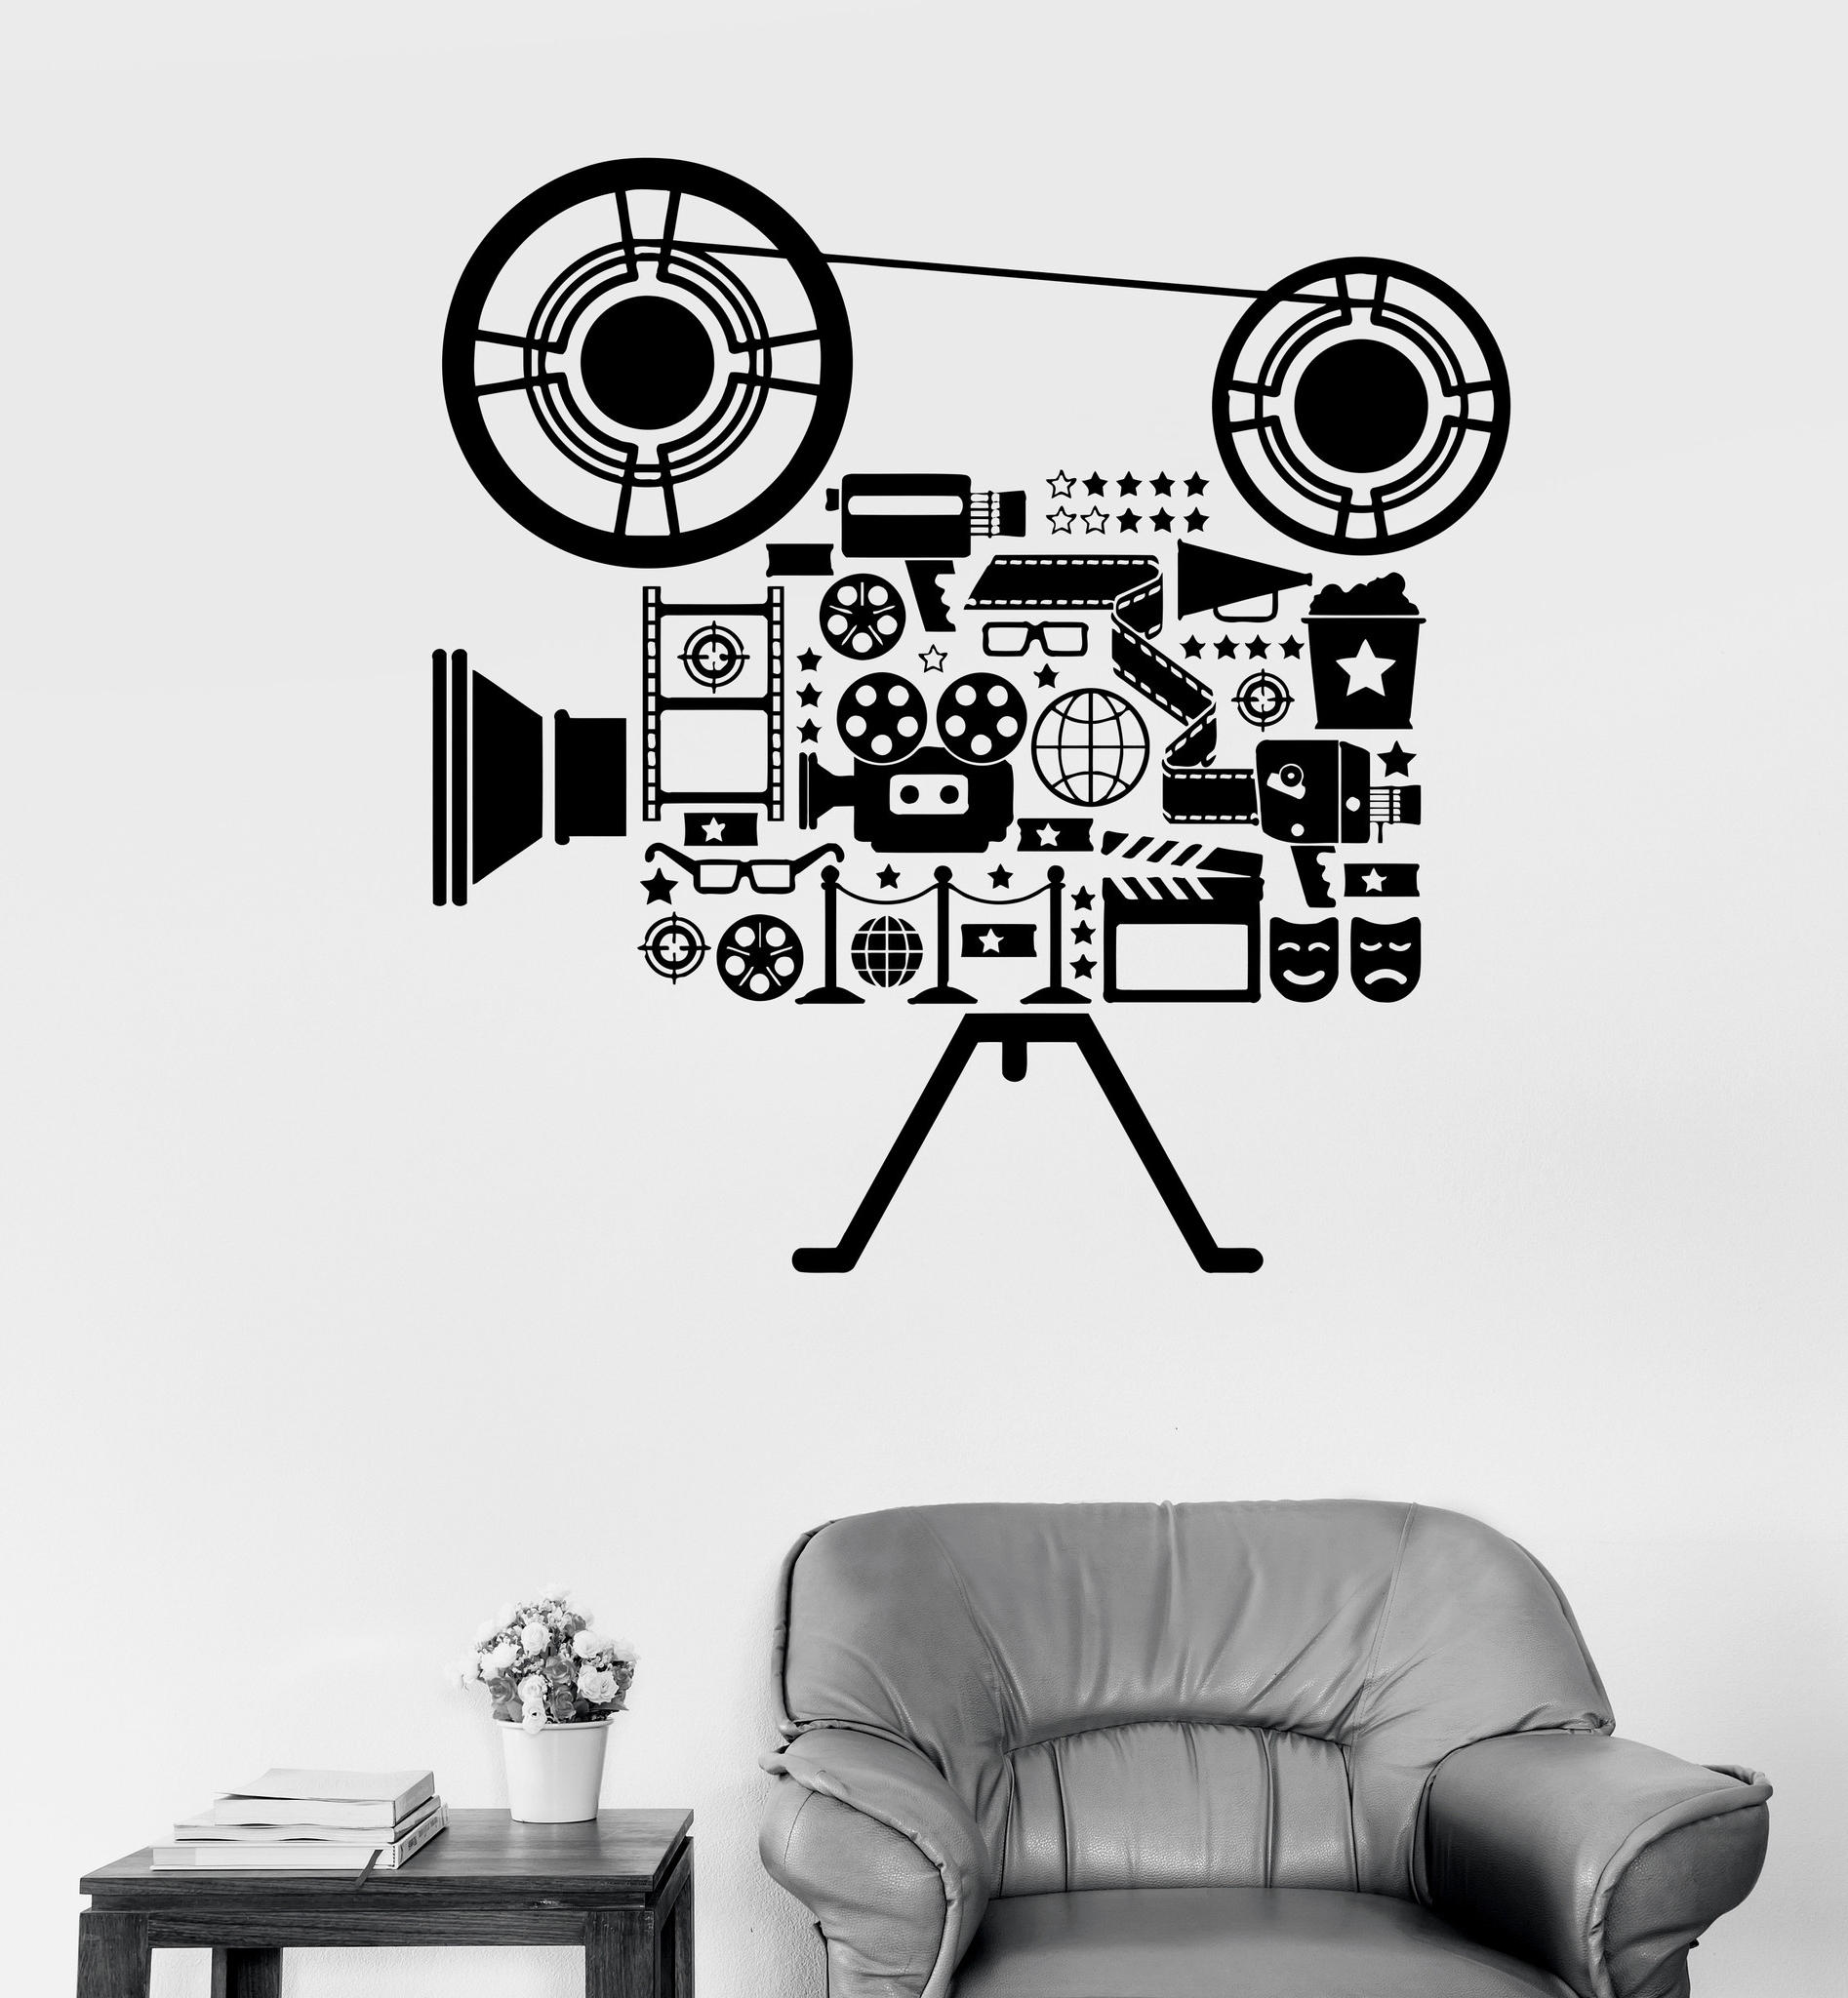 Interior Design : Top Movie Themed Wall Decor Home Design Popular With Regard To Well Liked Movie Themed Wall Art (Gallery 15 of 15)